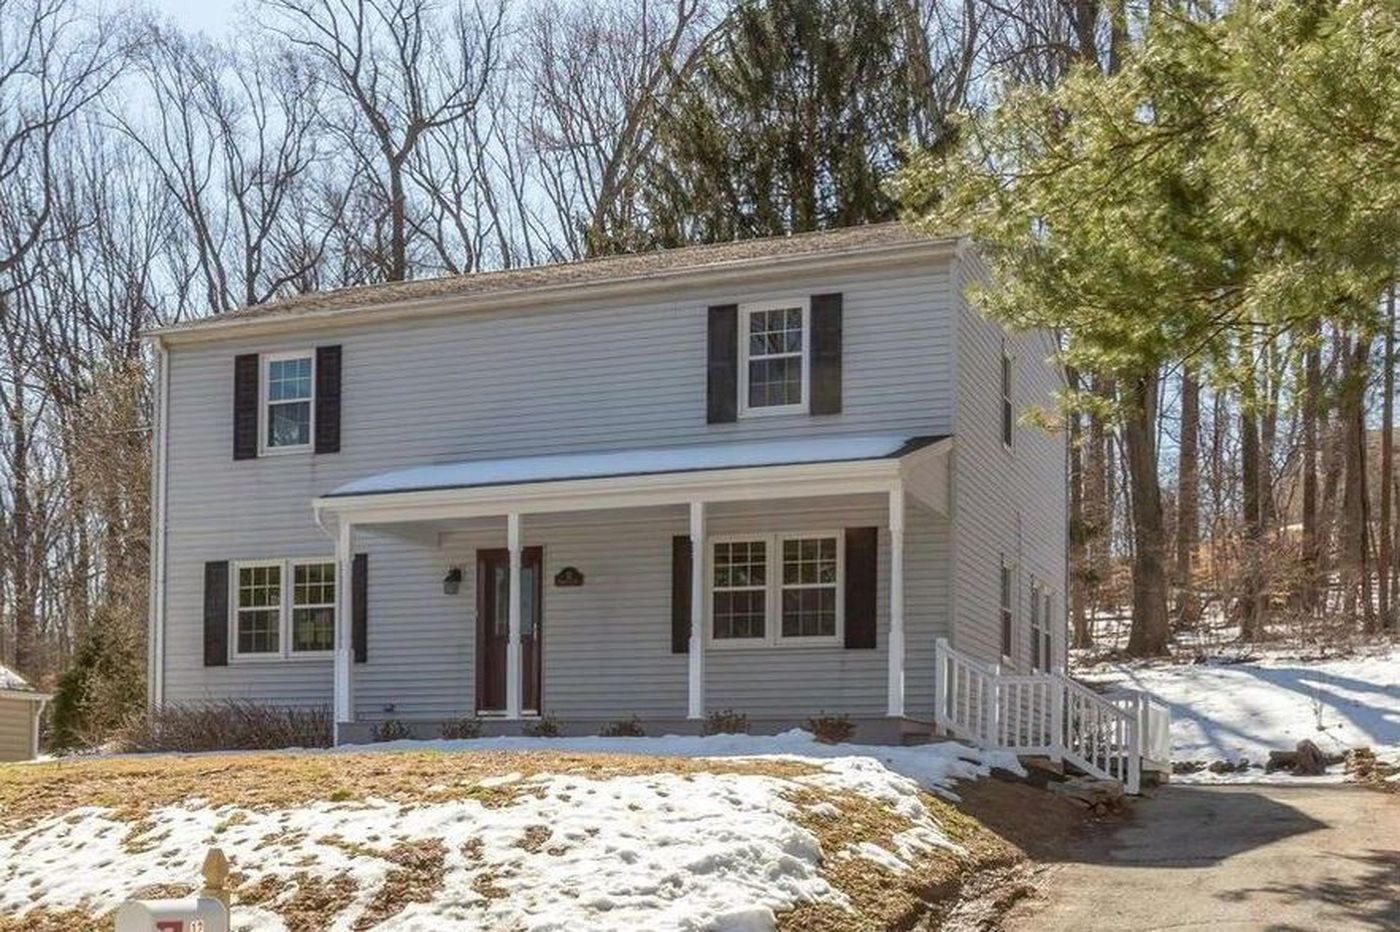 On the market: Three homes under $500,000 in one of Chester County's top school districts